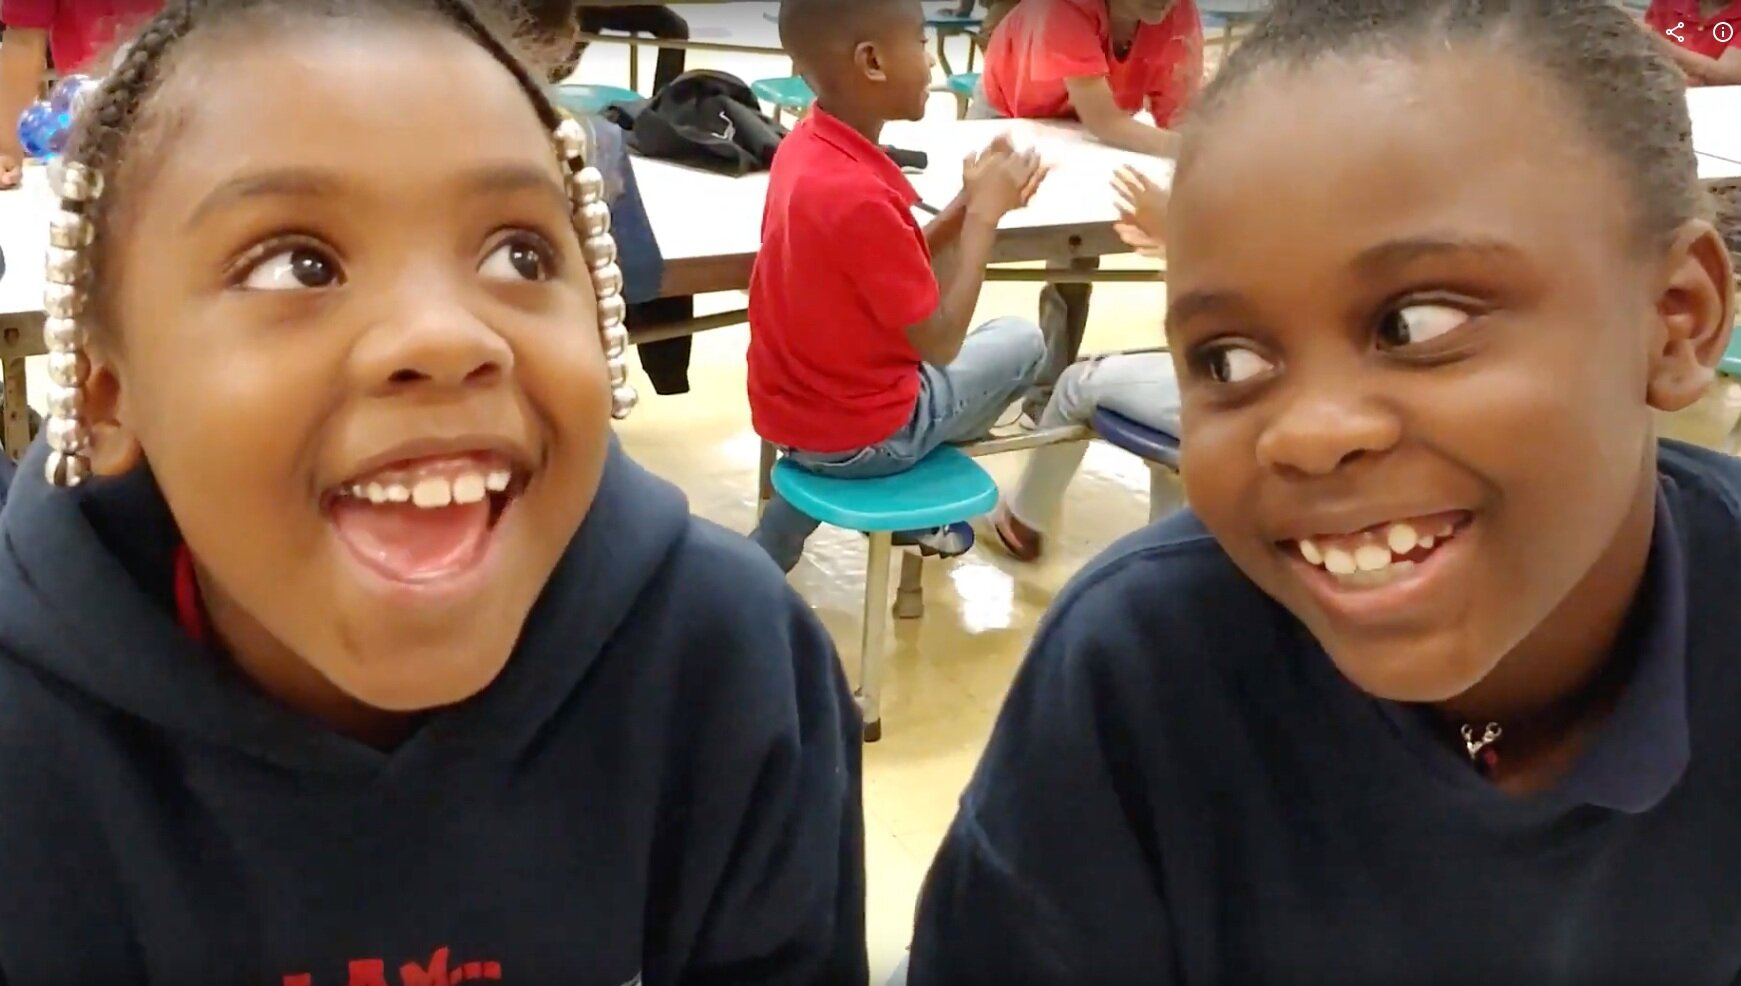 8-year-old Indian Creek Elementary students Tasia Cannon and Zoe Ray in the Center School District tell why they love their LINC after-school program.